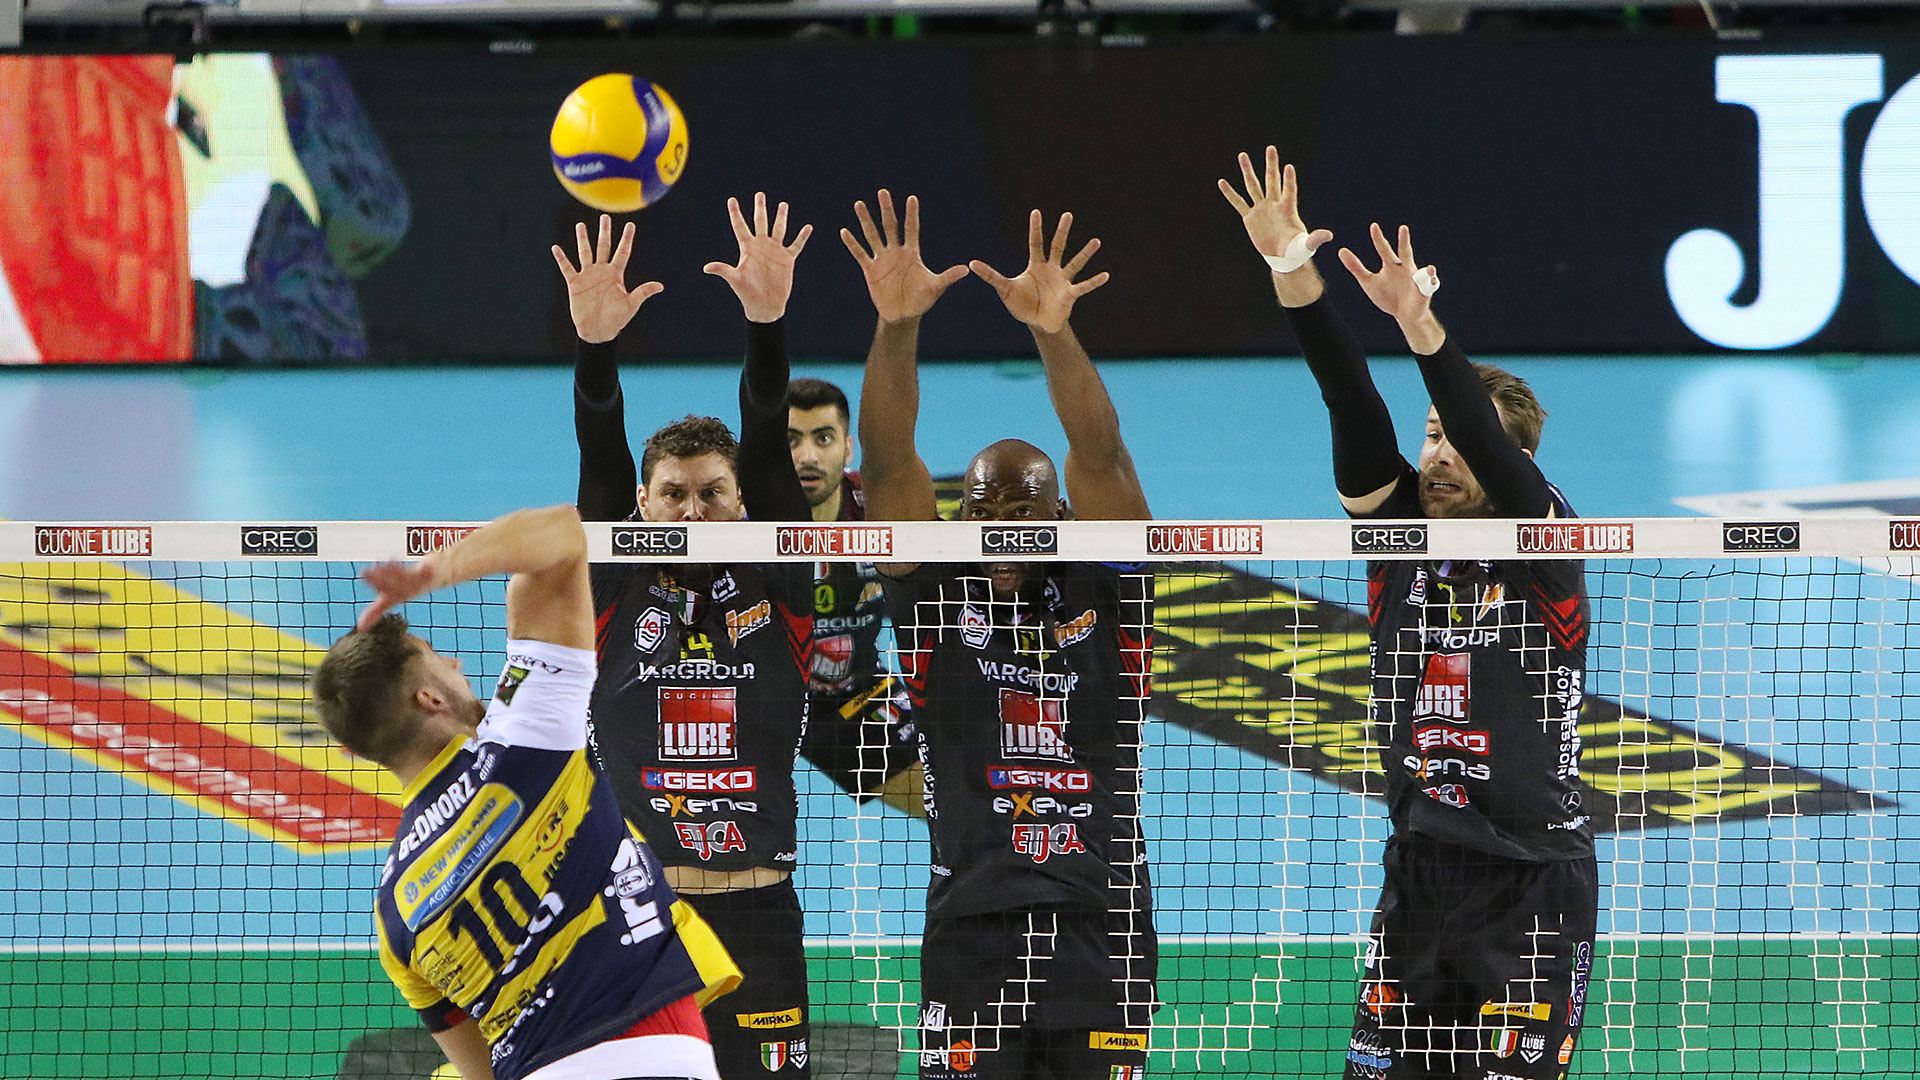 Lube-Leo Shoes Modena 3-0, big match e primato ai biancorossi